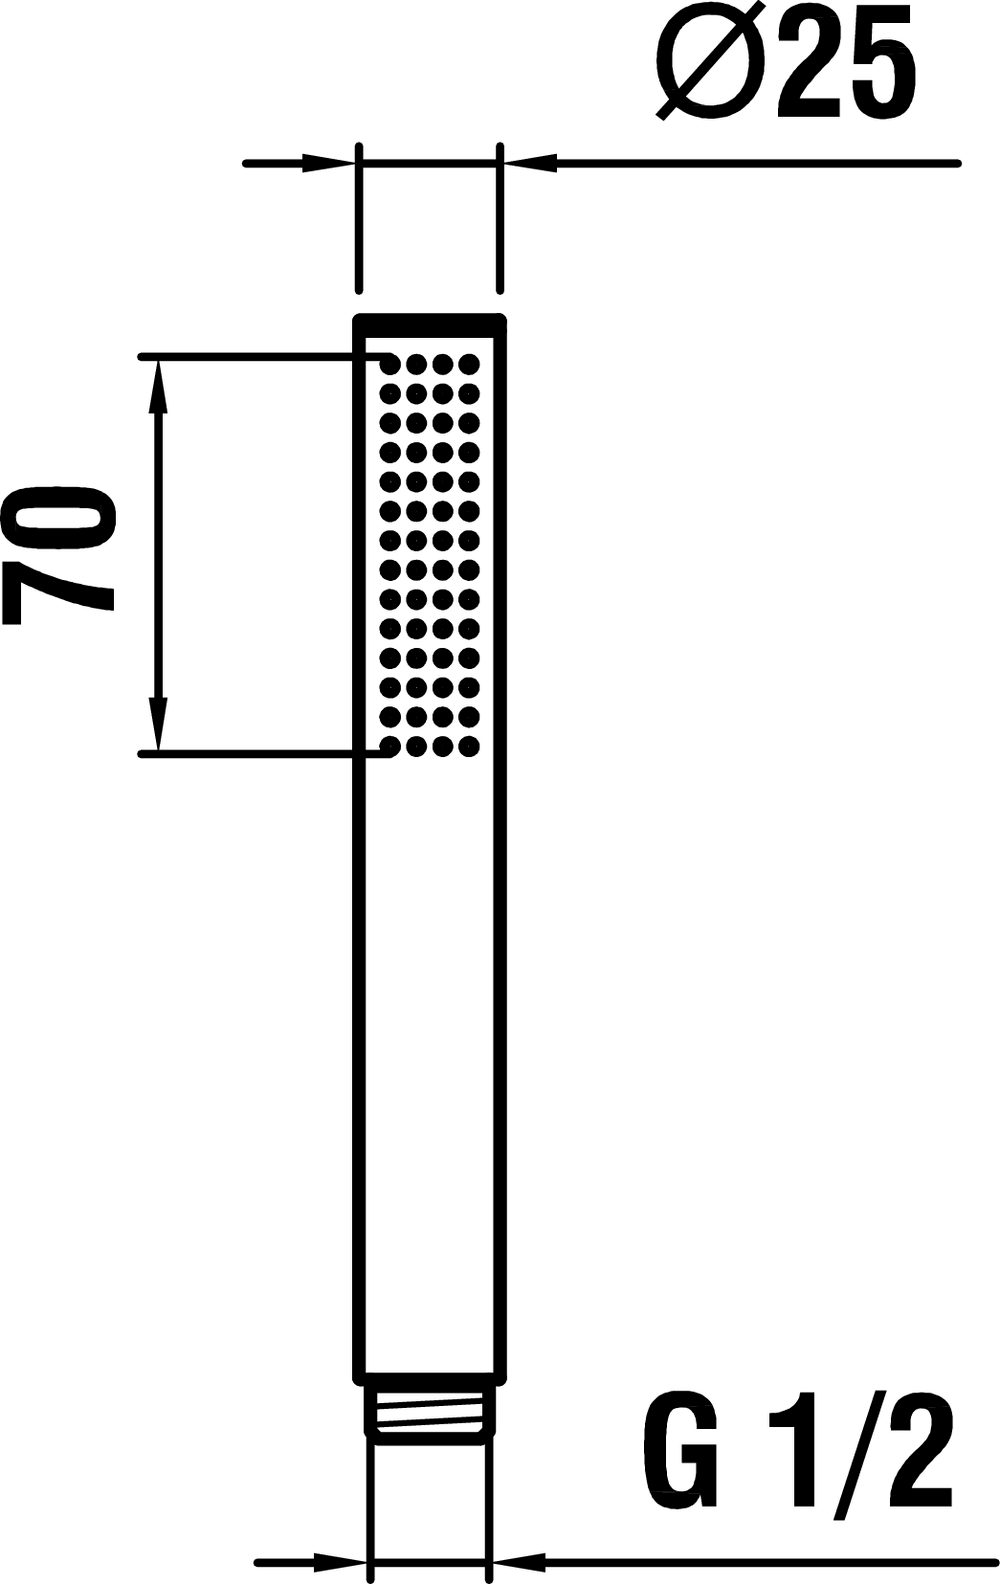 3619820041251 - TwinStick, handshower, with RubiClean - Technical Drawing